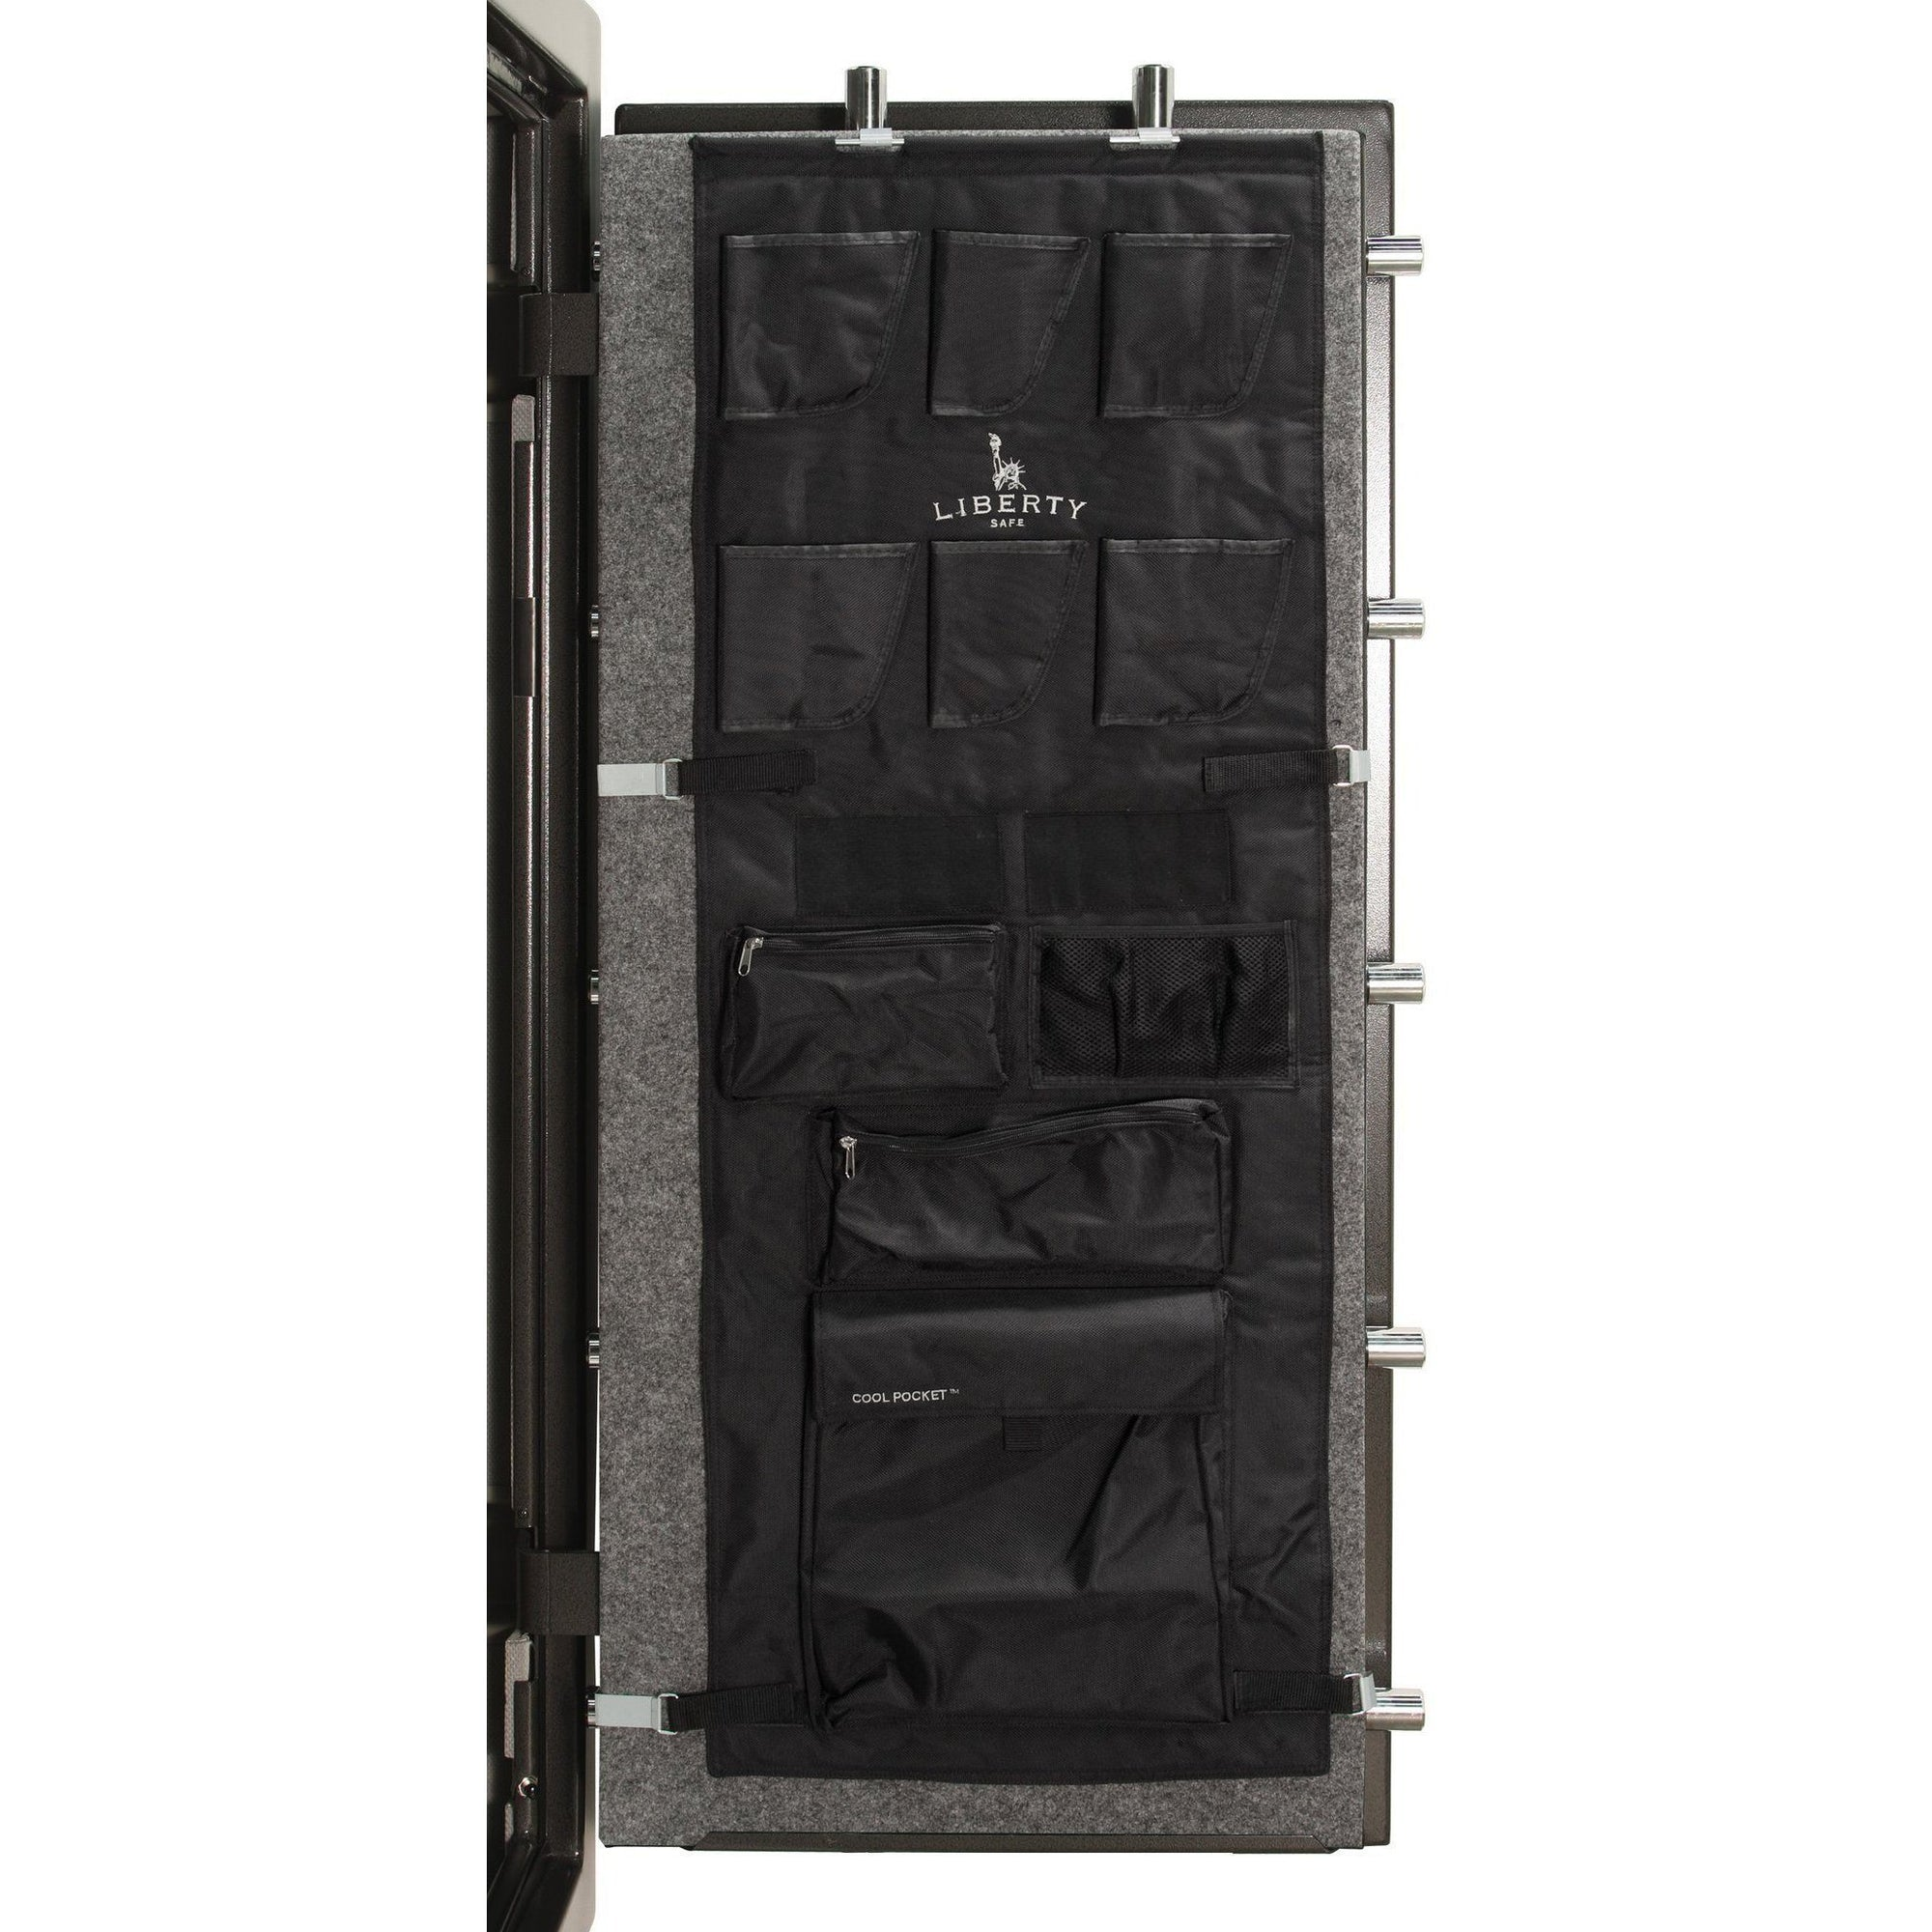 Accessory - Storage - Door Panel - 20-23-25 size safes.